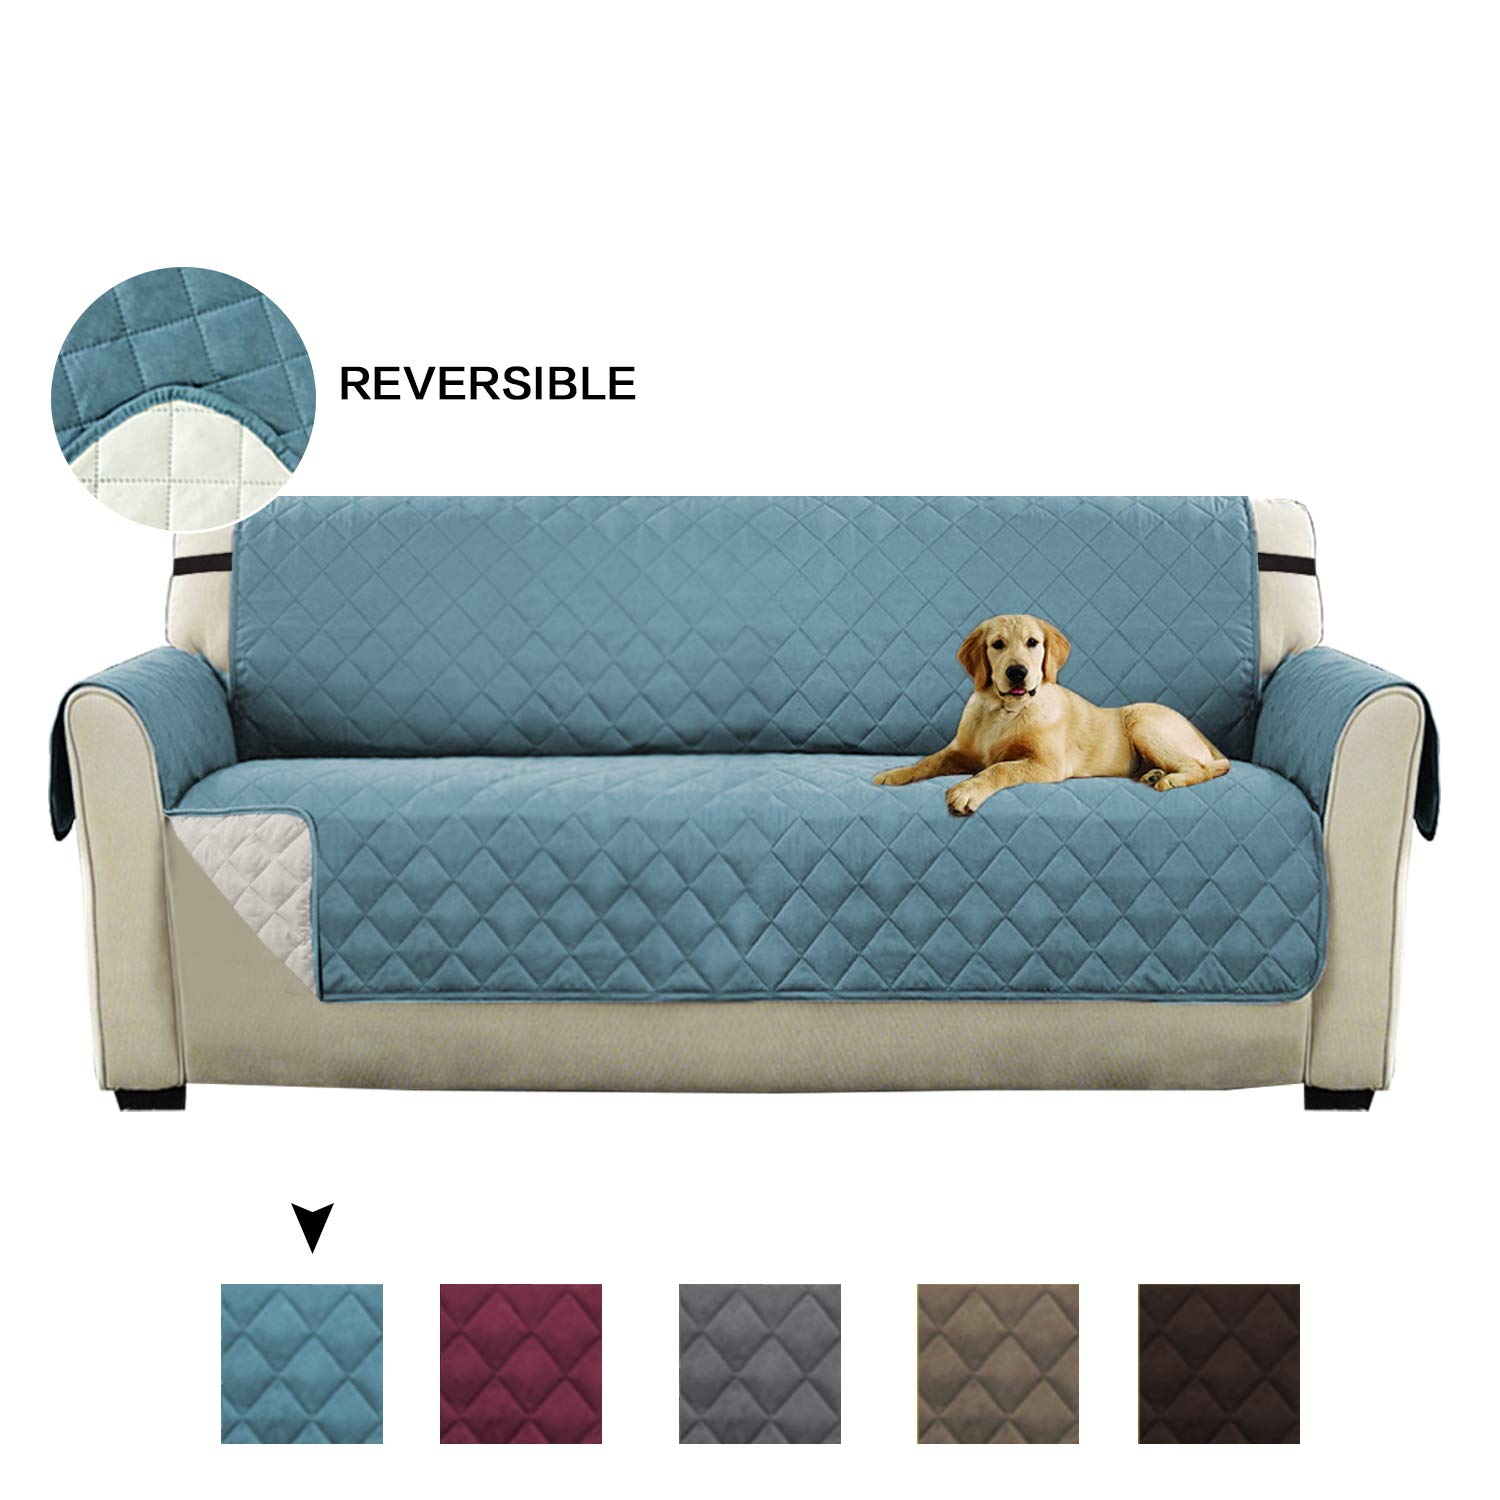 Turquoize Ultra Soft Reversible Quilted Furniture Protector with Straps Sofa Slipcover for Pets (Chair - Brown/Beige, 75' x 65') 75 x 65)